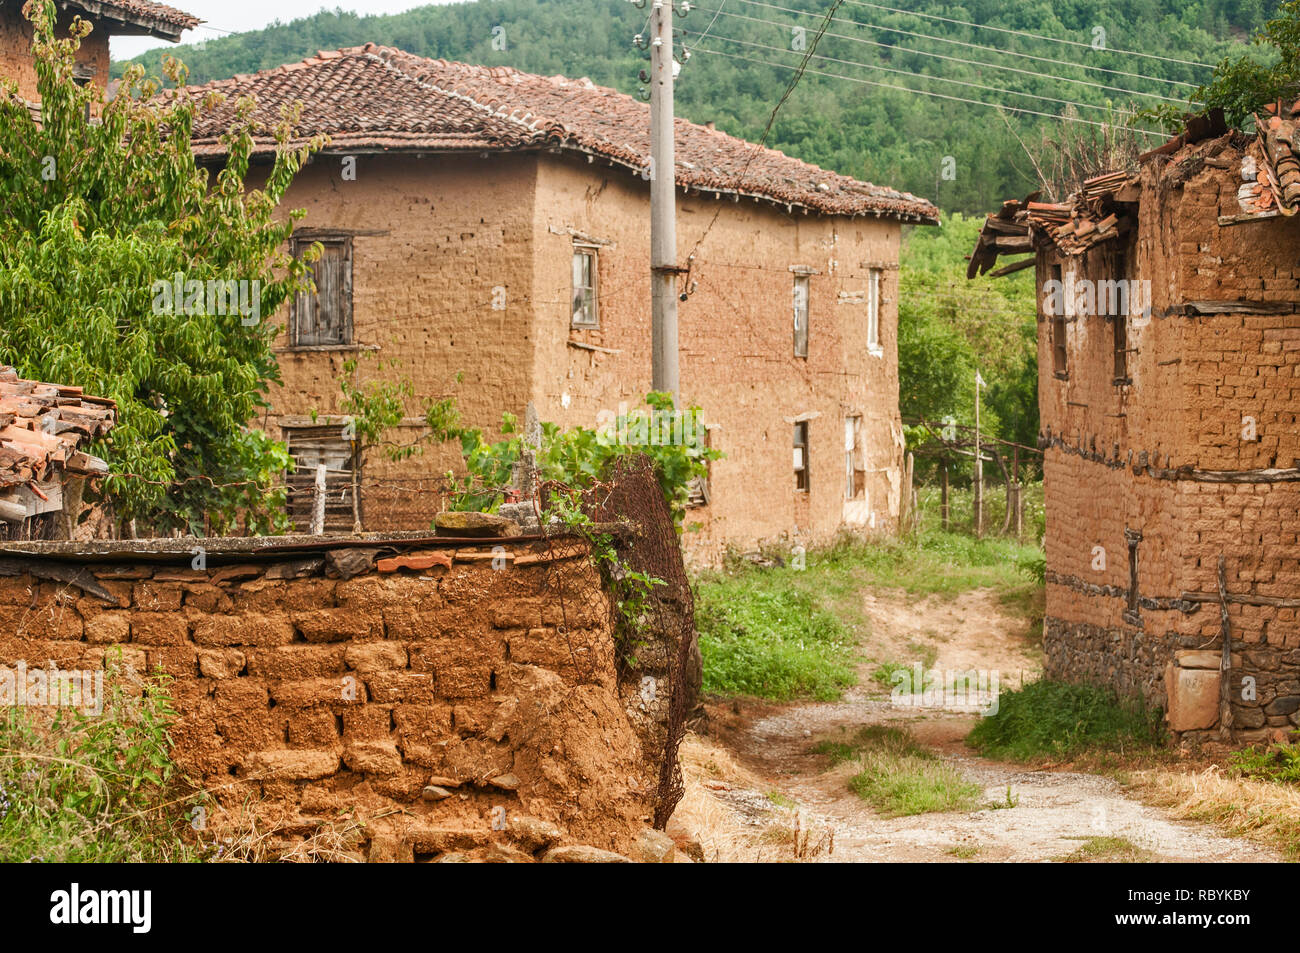 Old abandoned weathered retro vintage rural brick wall houses in countryside village - Stock Image